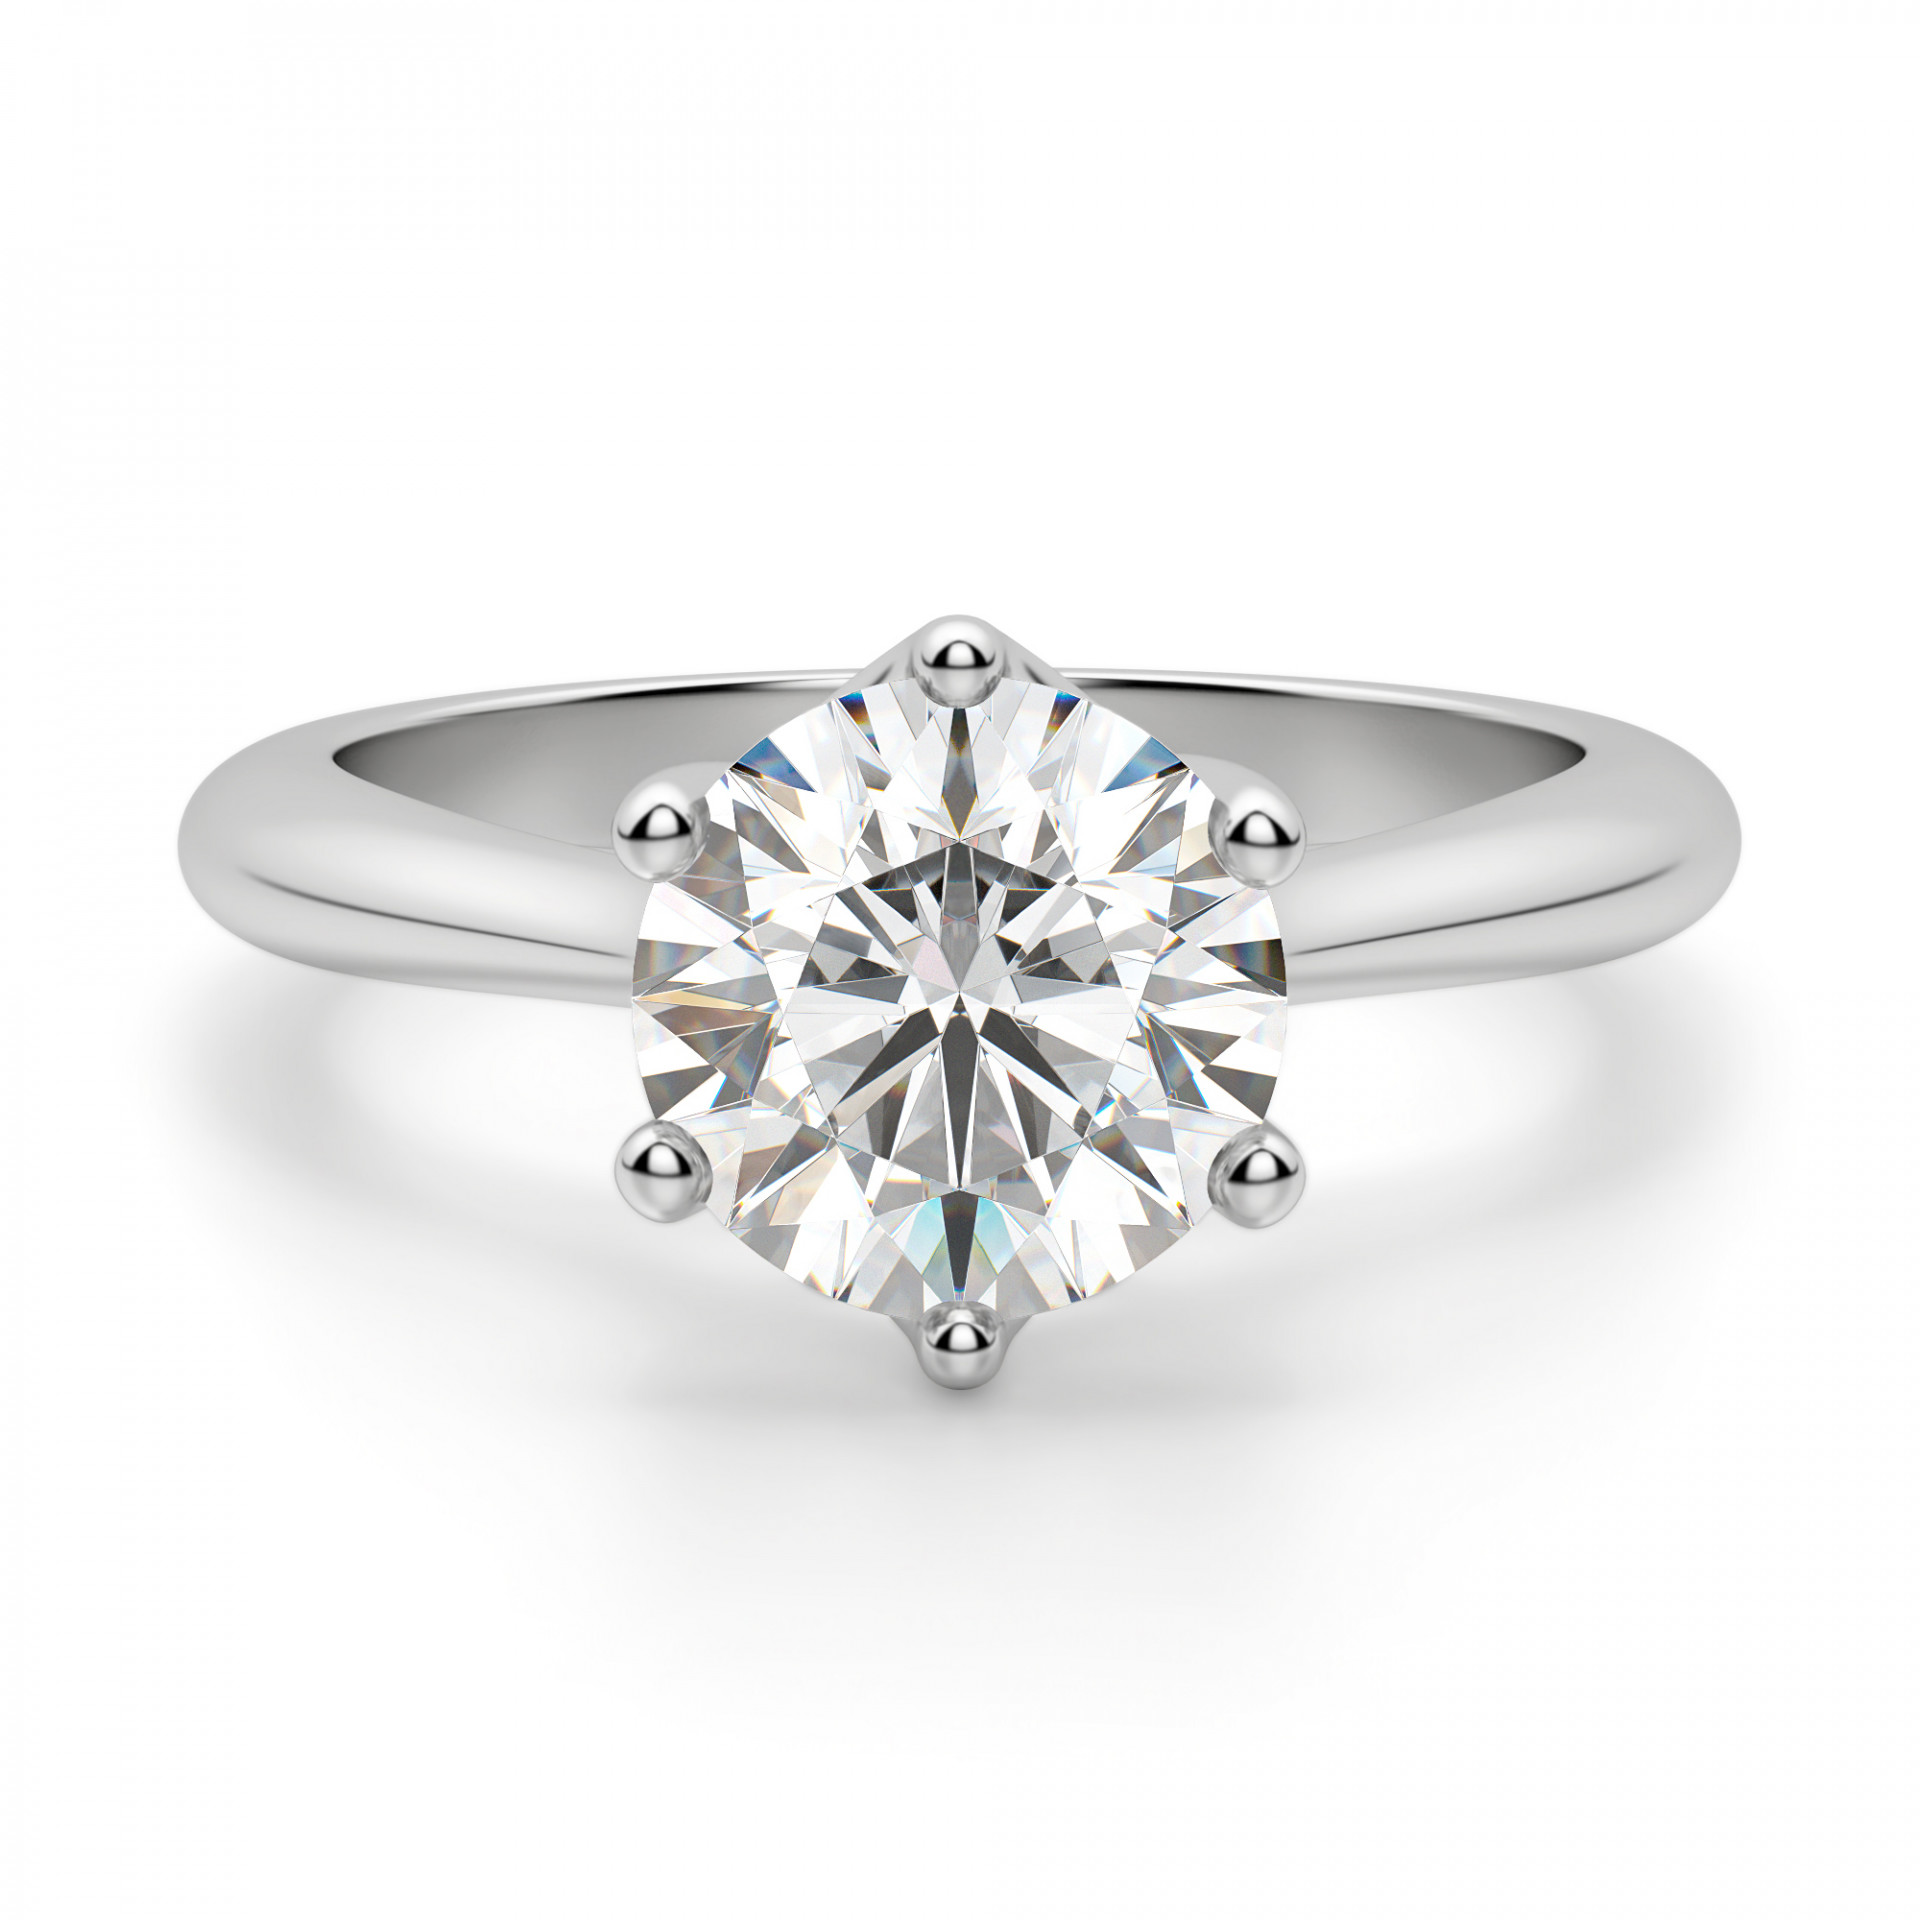 bali classic round cut engagement ring. Black Bedroom Furniture Sets. Home Design Ideas